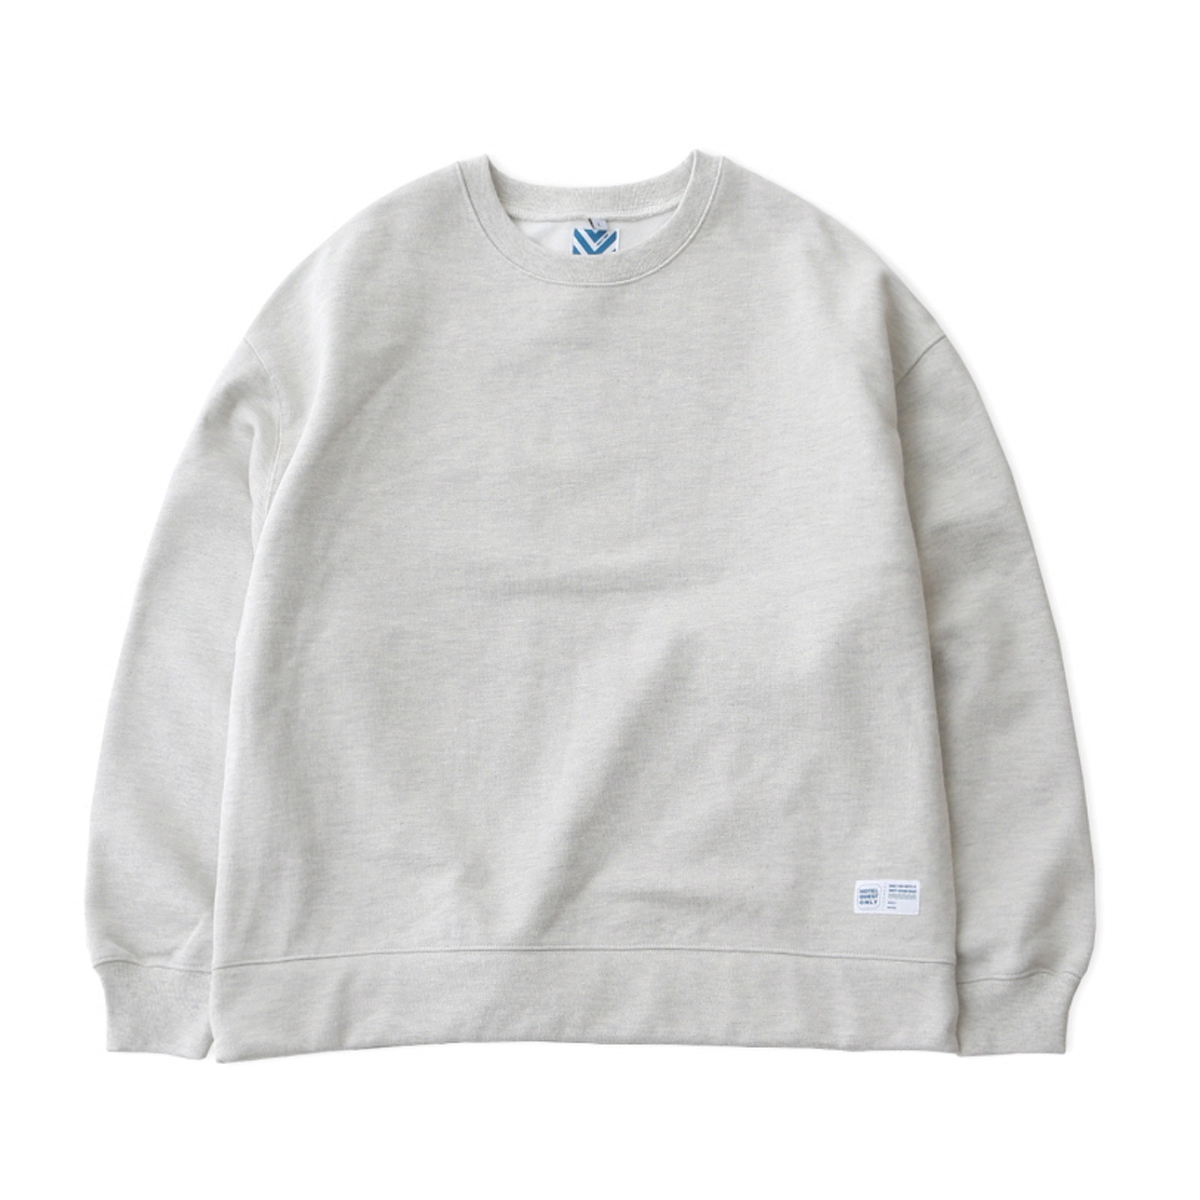 [DAILY INN] HOTEL SIGNATURE 970G SUPER HEAVY WEIGHT OVERSIZED SWEAT 'LIGHT MELANGE'